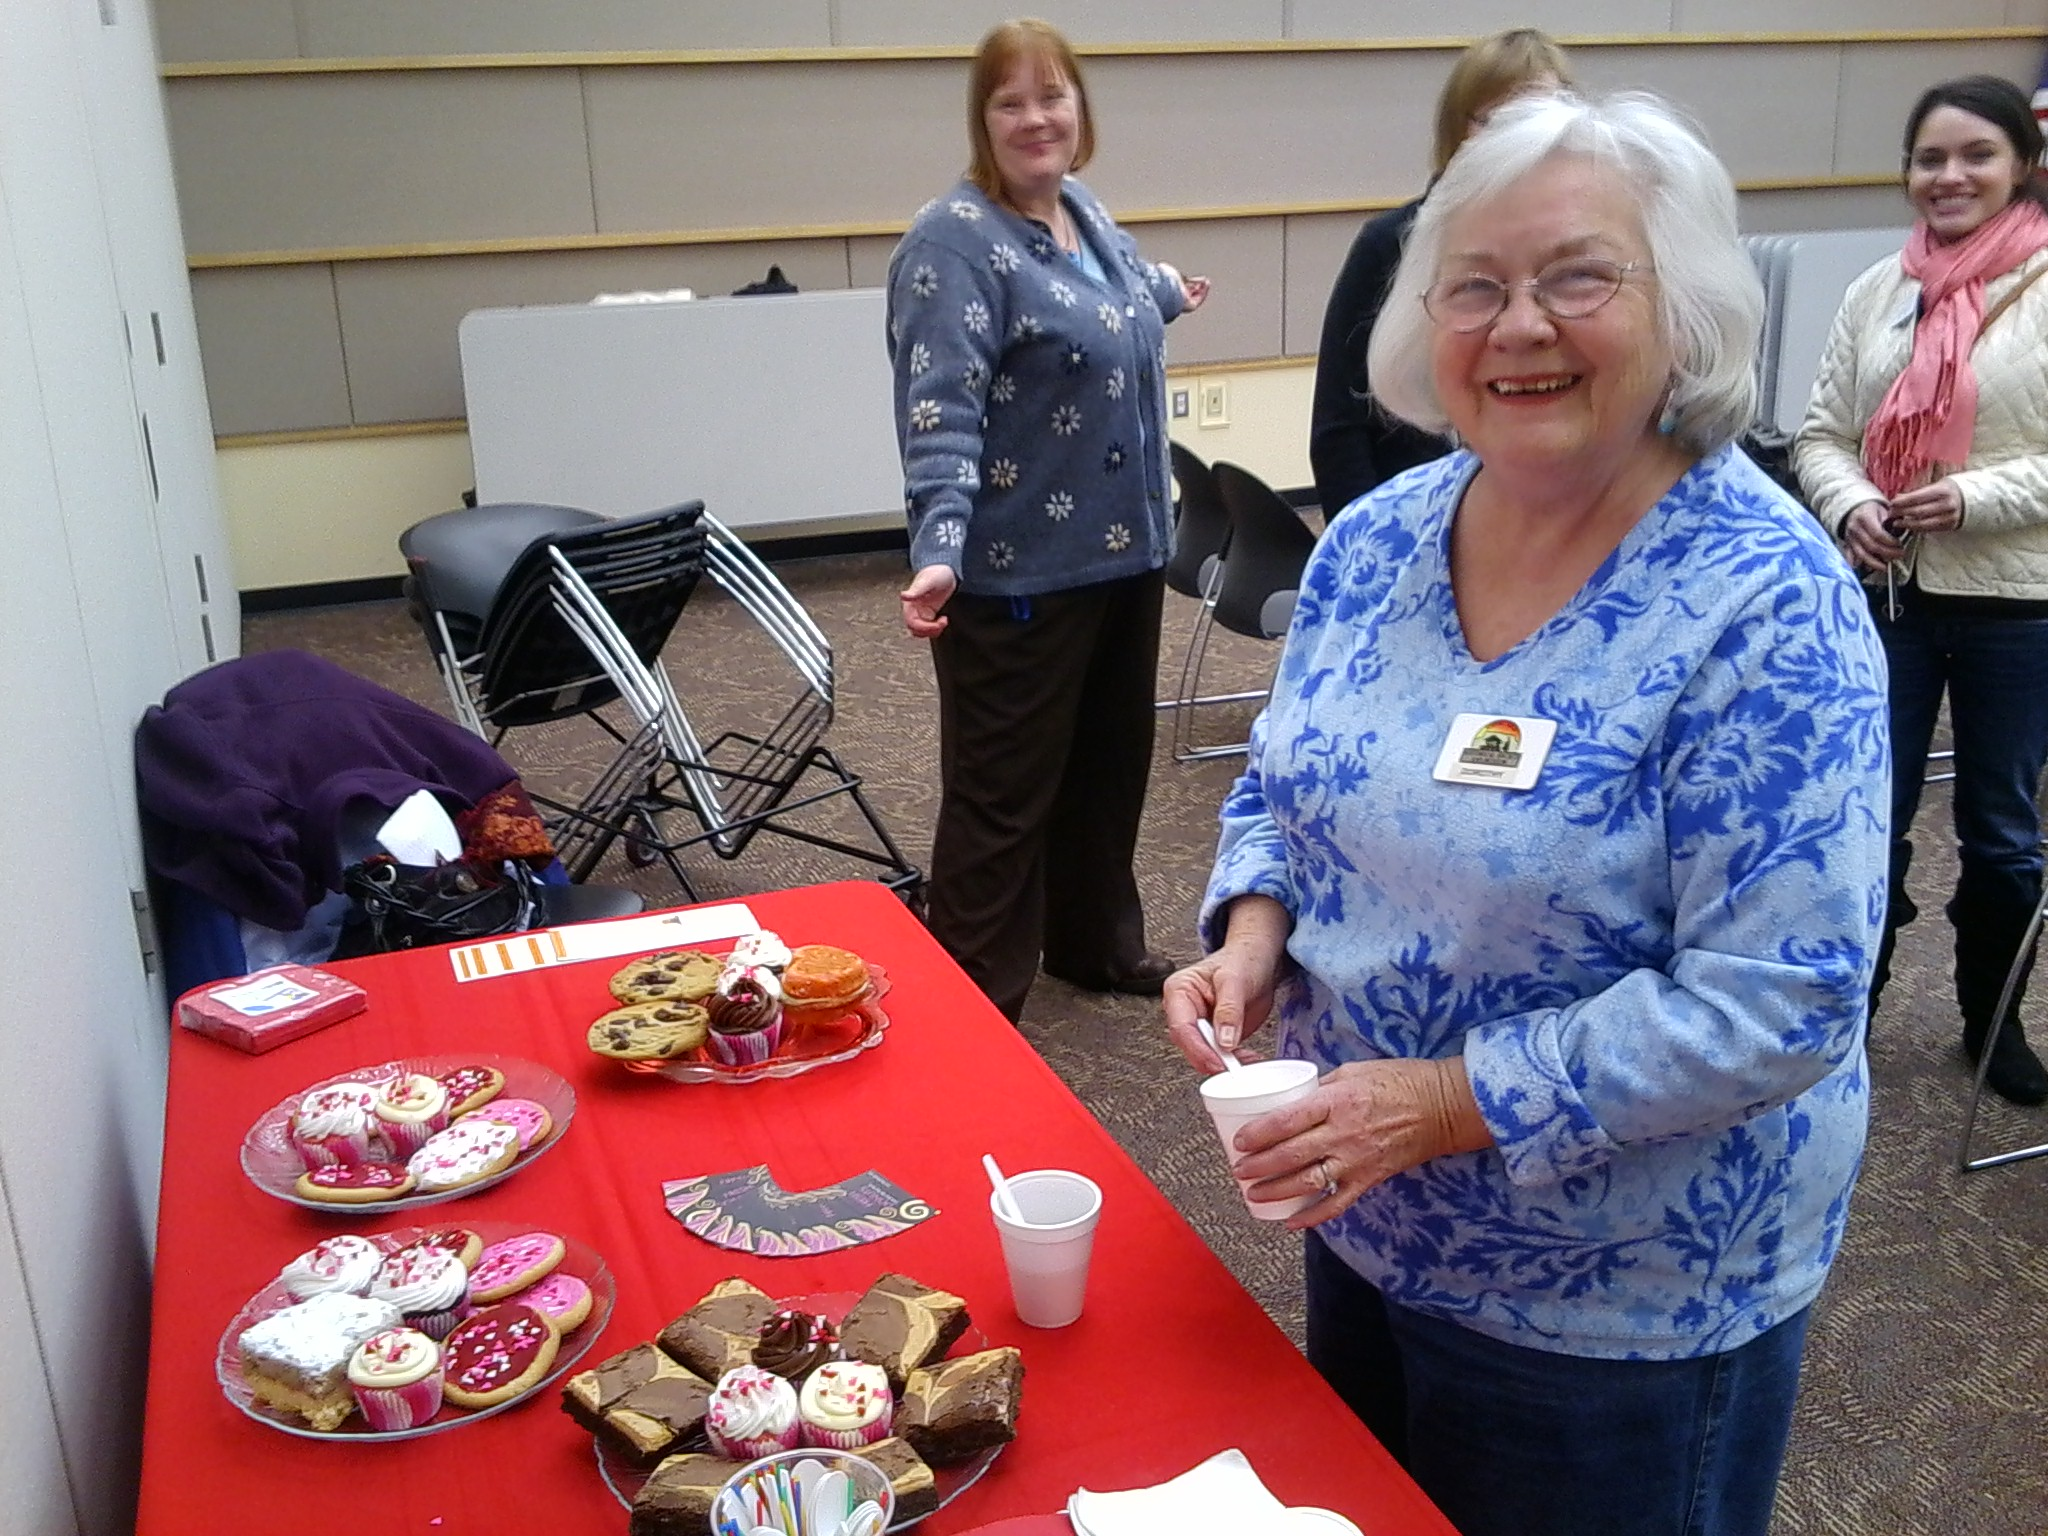 The Cakery at Castle Rock Historical Society Membership Meeting. Pictured: Dorothy Kelly, Shaun Boyd and Ashley Suarez.